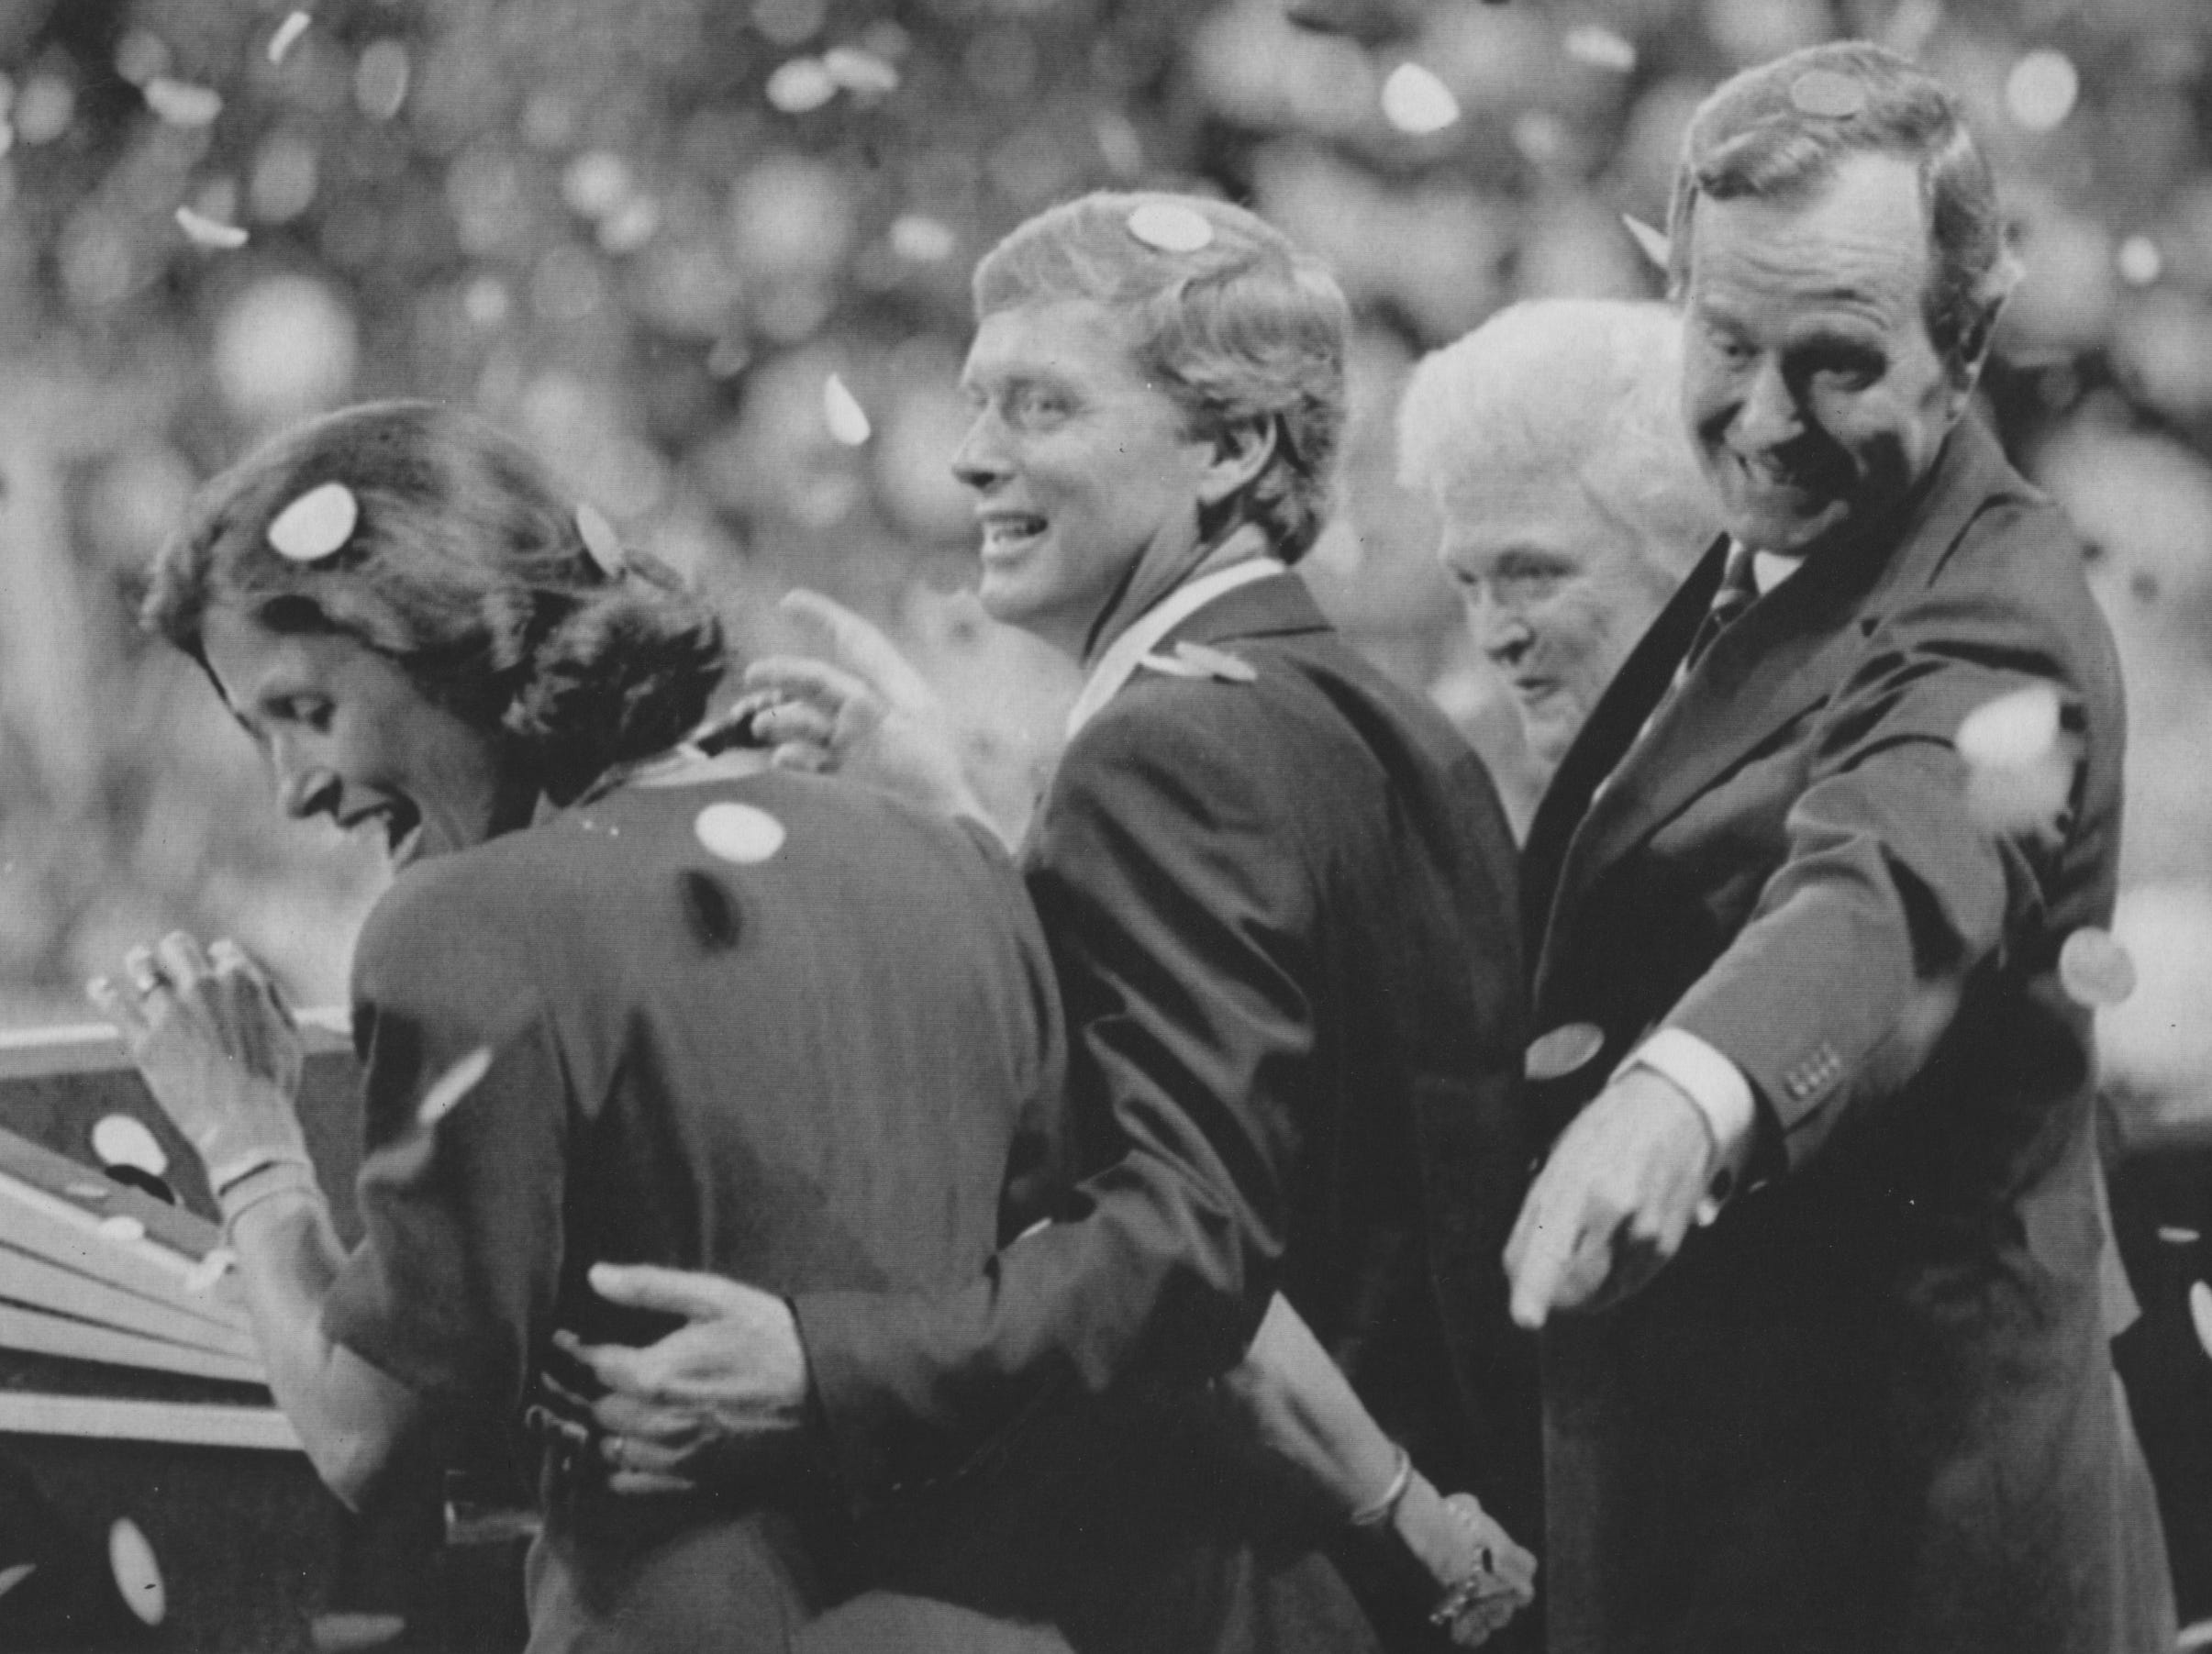 Republican presidential candidate George H. W. Bush points behind the back of his running mate, Sen. Dan Quayle of Indiana, as they and their wives, Marilyn Quayle, left, and Barbara Bush, are showered with confetti at the end of the Republican National Convention on Aug. 18, 1988, in New Orleans.